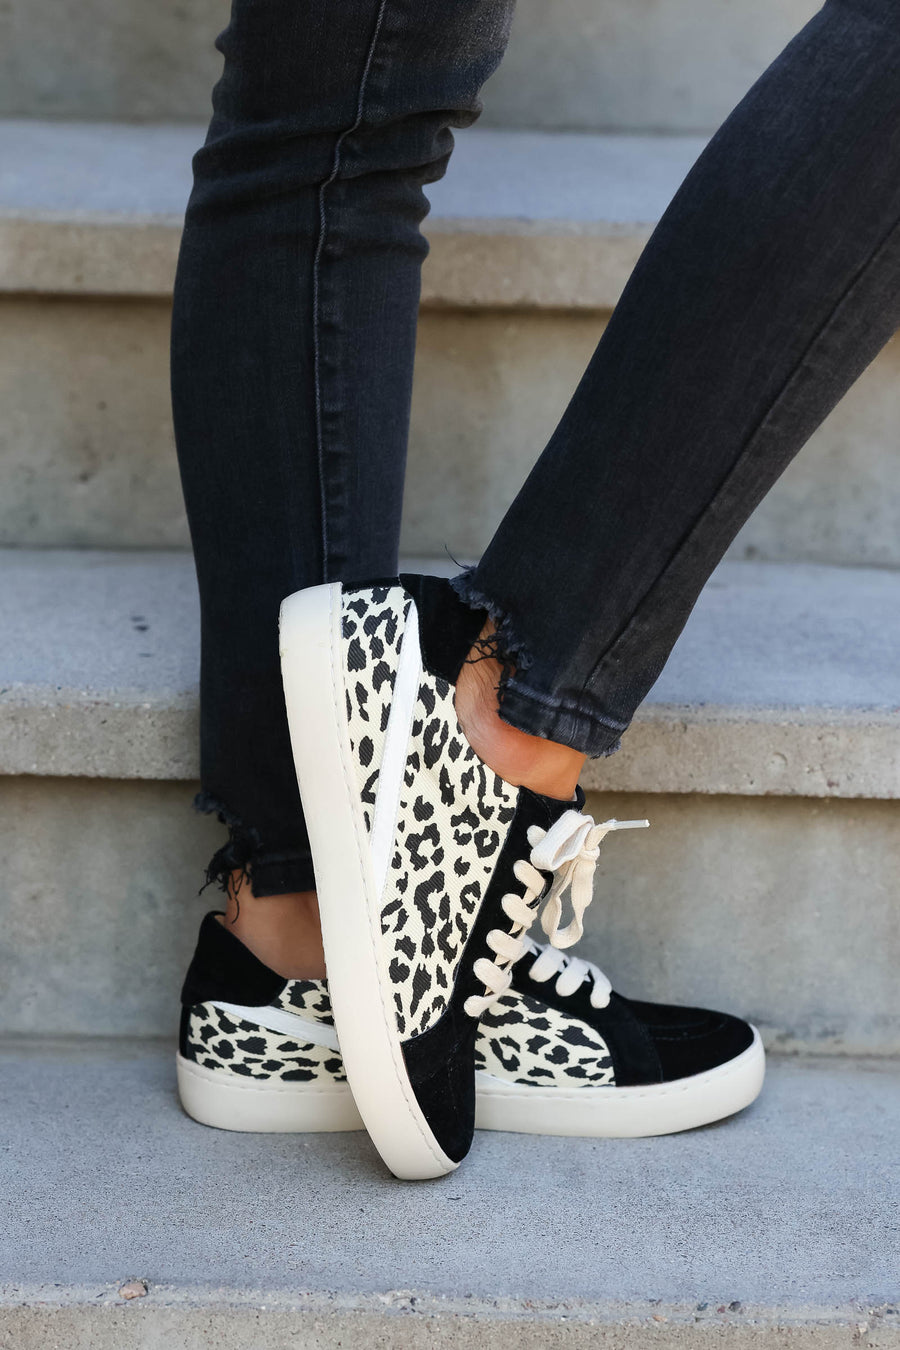 She's Got Hustle Leopard Sneakers - Black closet candy women's trendy animal print canvas and vegan suede canvas 1